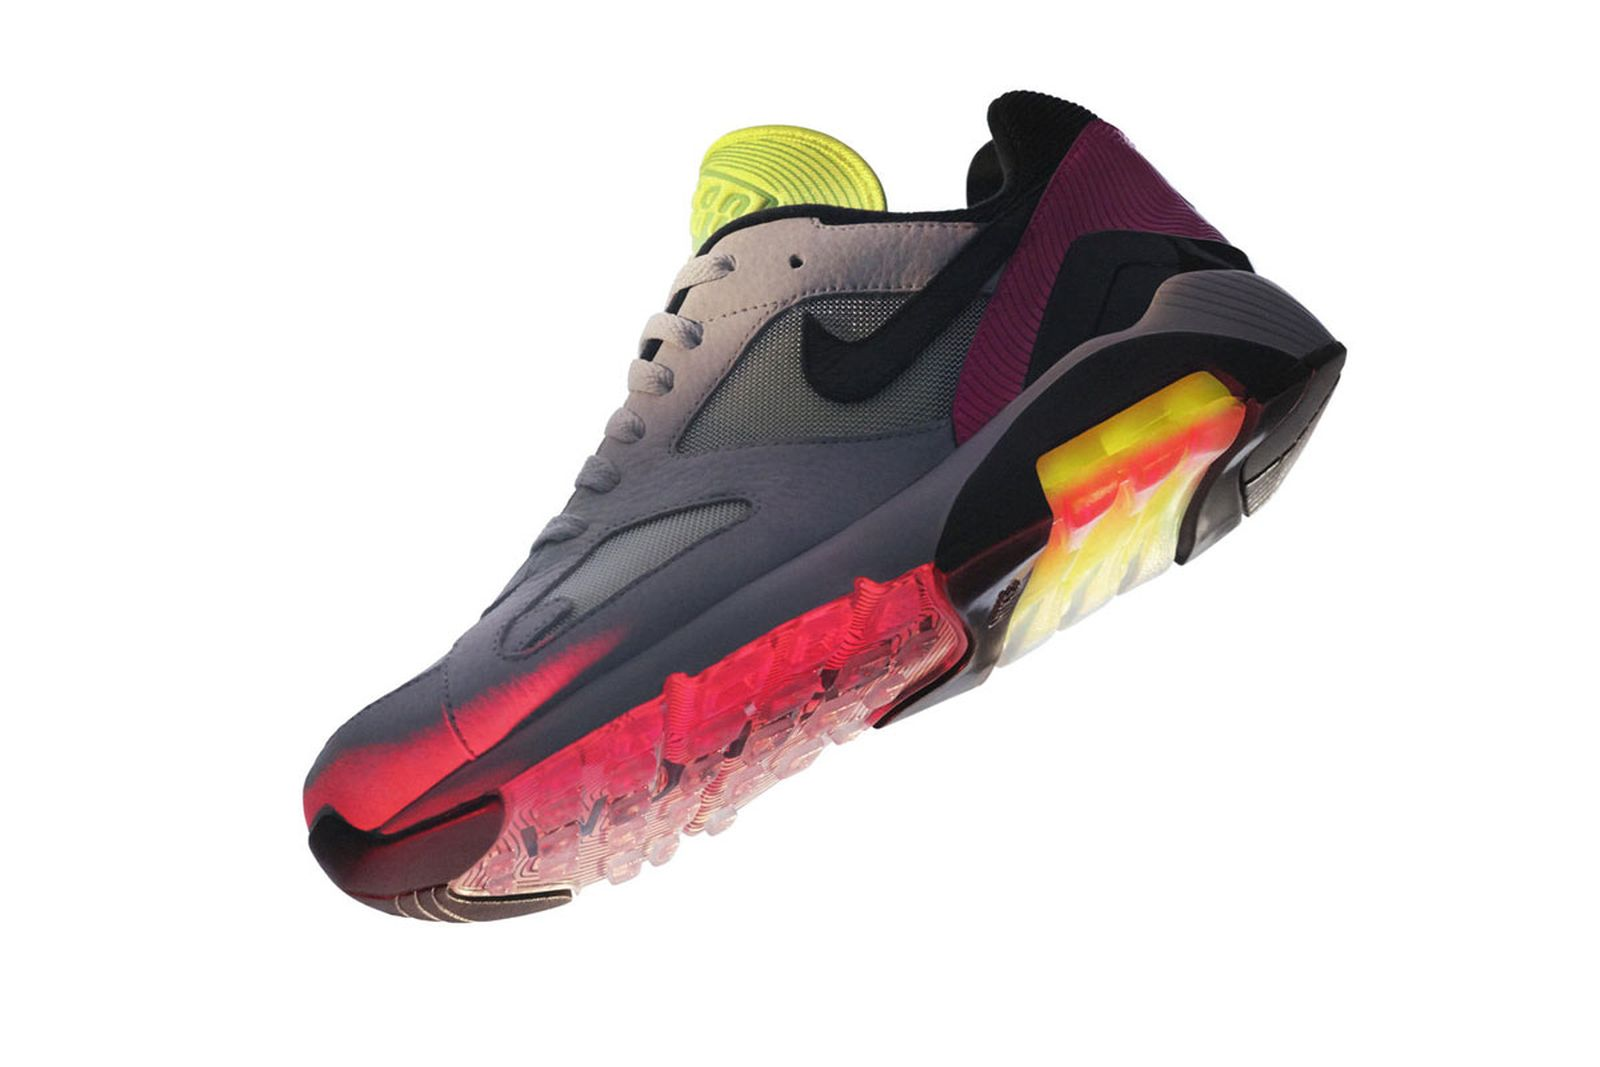 best nike 2019 air max 180 BLN Girls Don't Cry Martine Rose comme des garcons